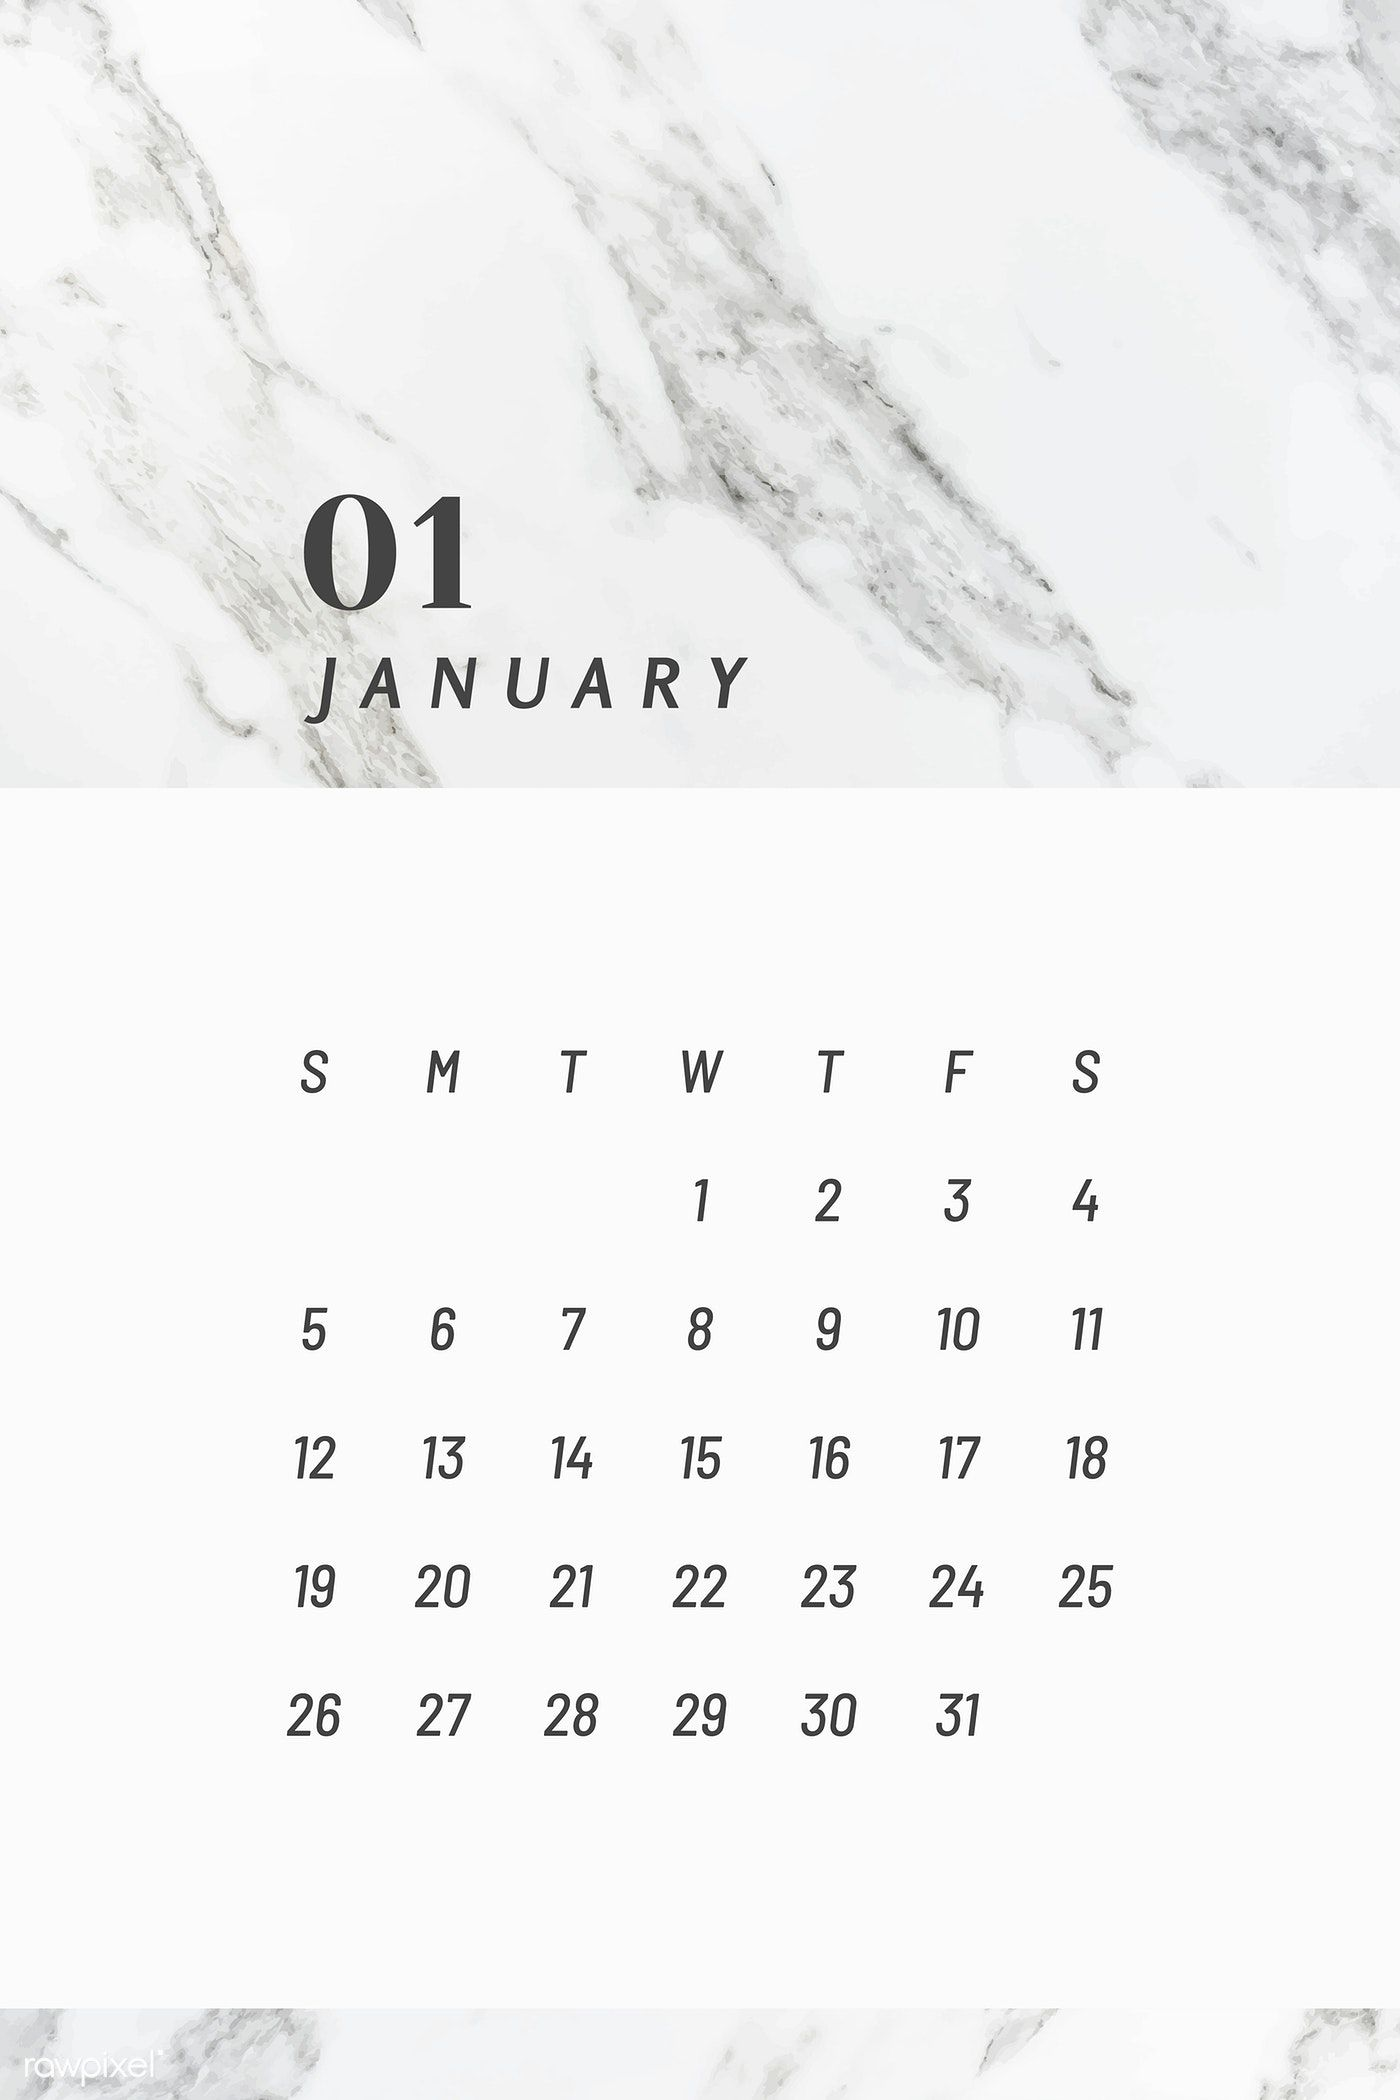 Black And White January Calendar 2020 Vector Free Image By